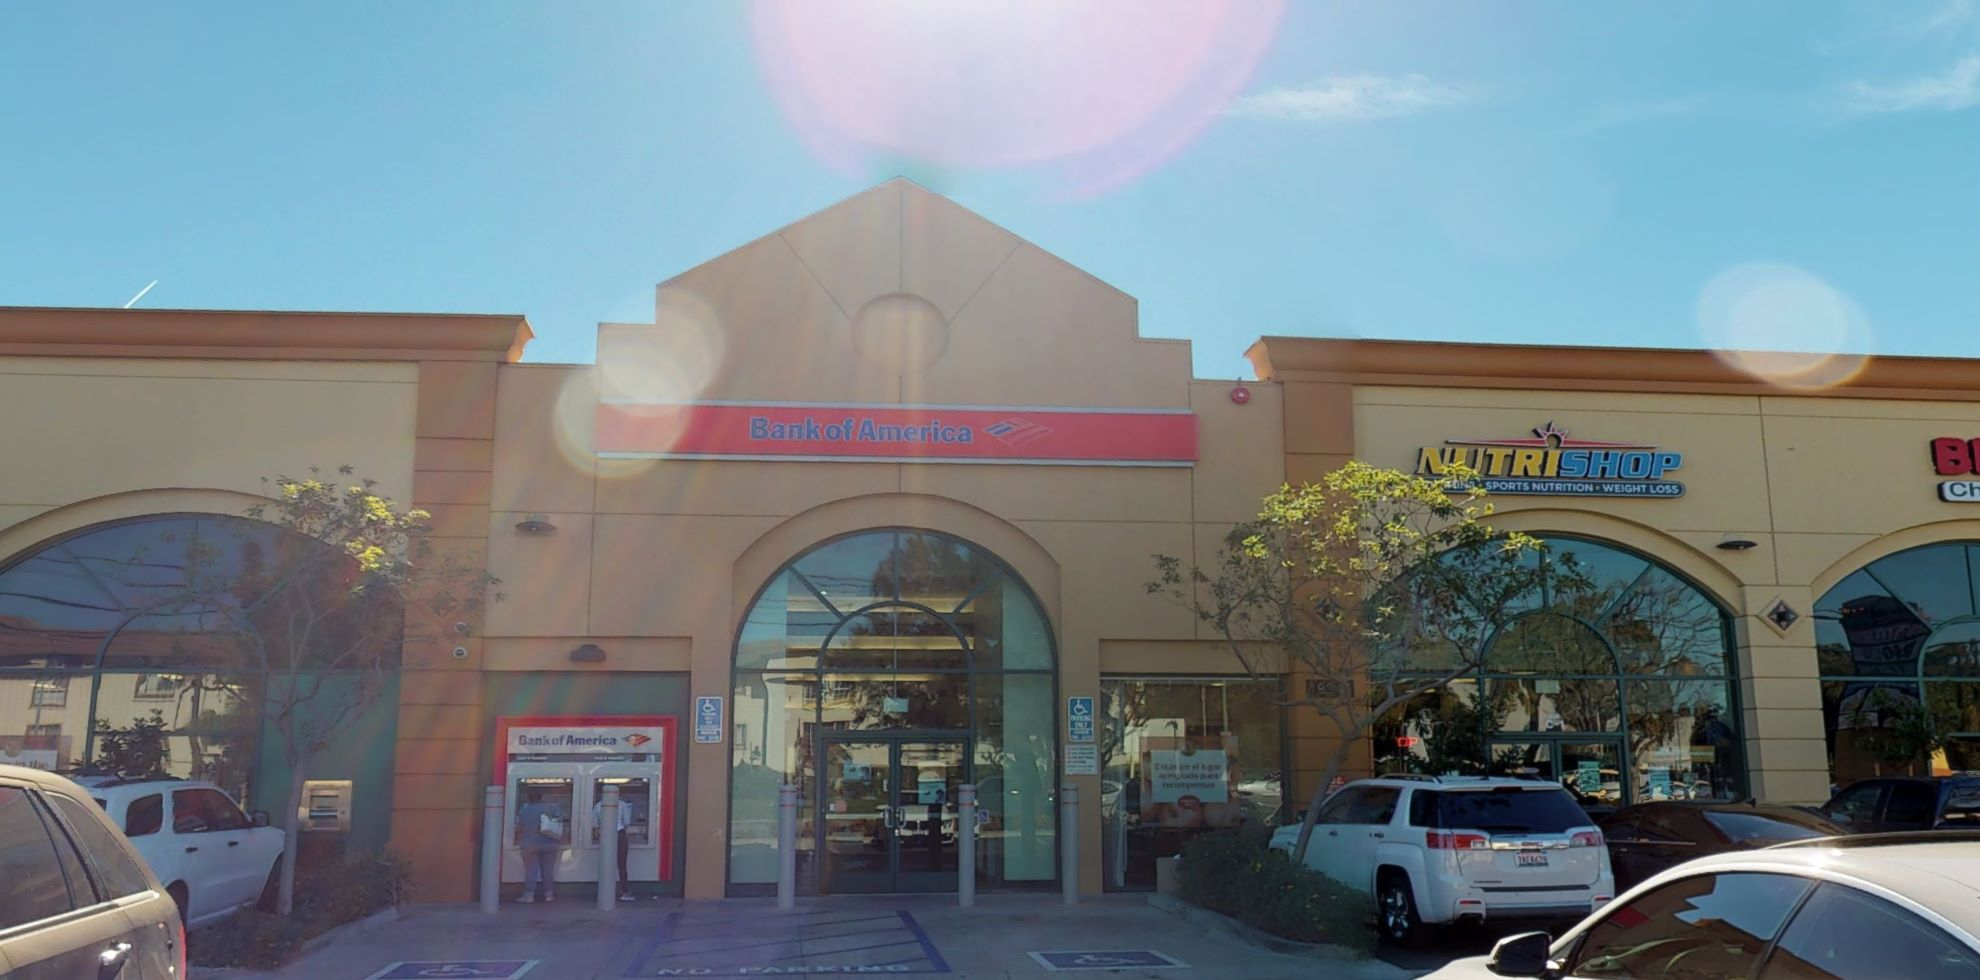 Bank of America financial center with drive-thru ATM | 19240 Nordhoff St, Northridge, CA 91324